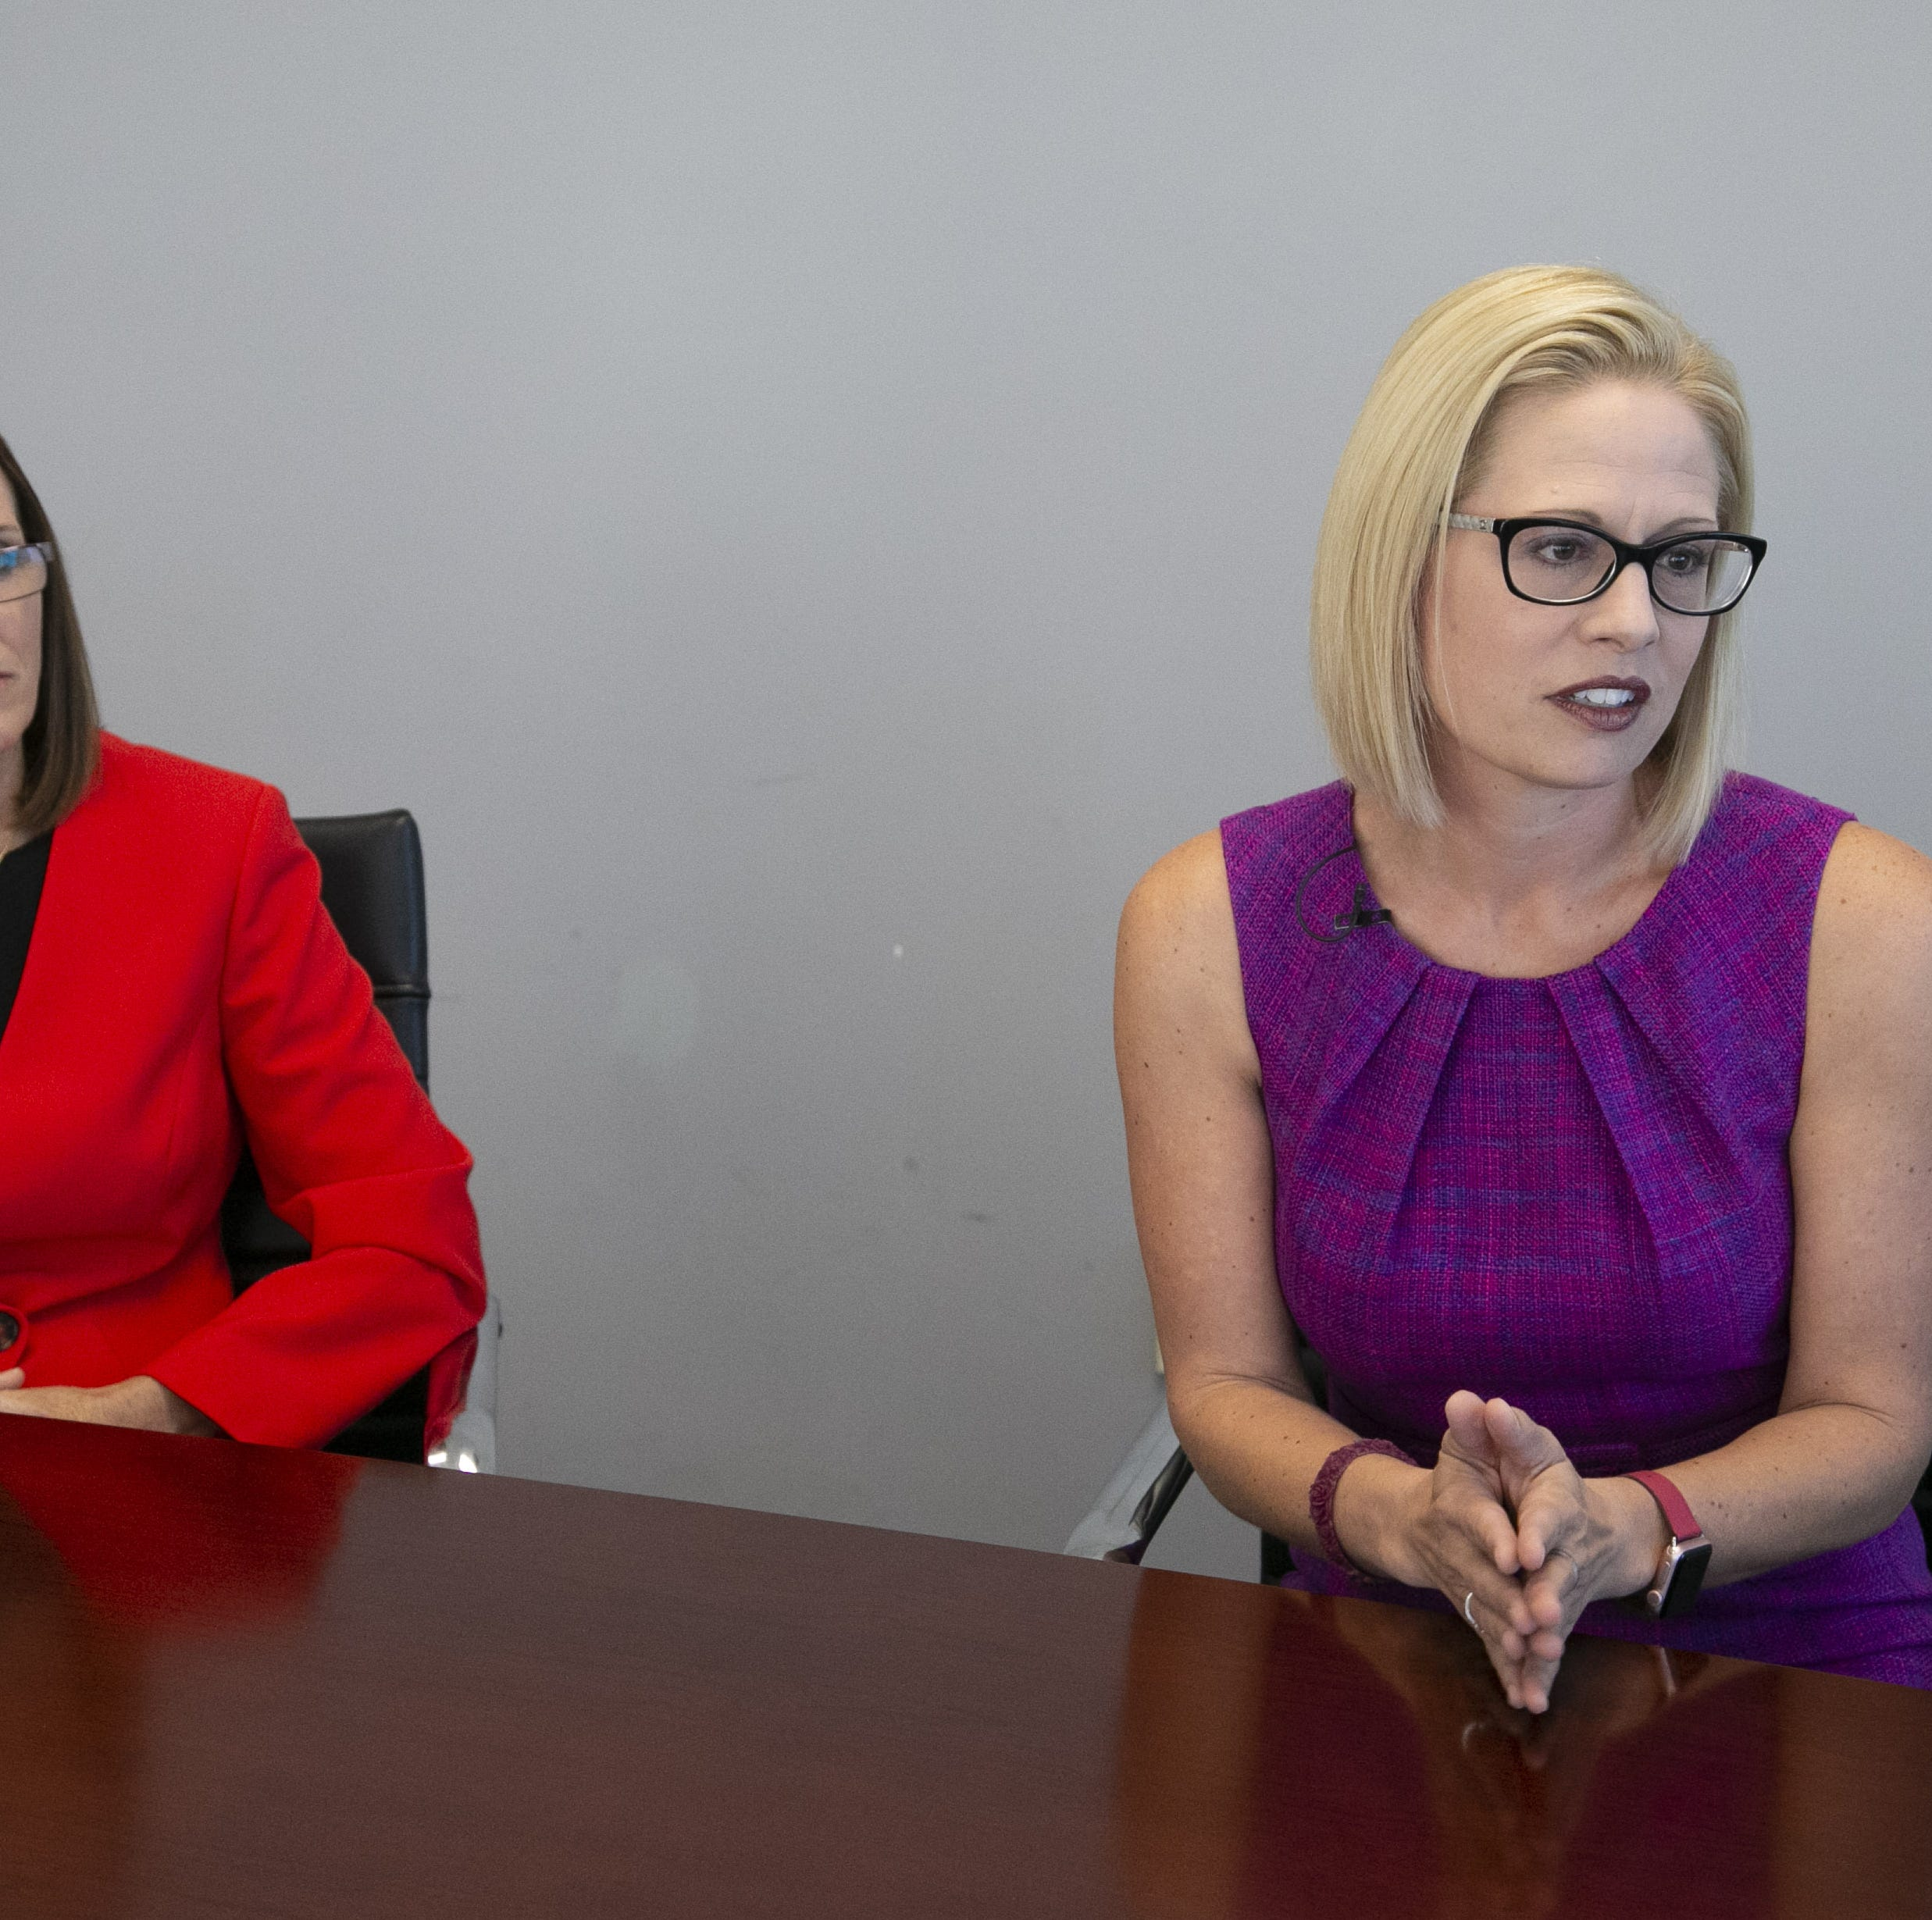 5 takeaways from Arizona's epic Senate race between Martha McSally and Kyrsten Sinema